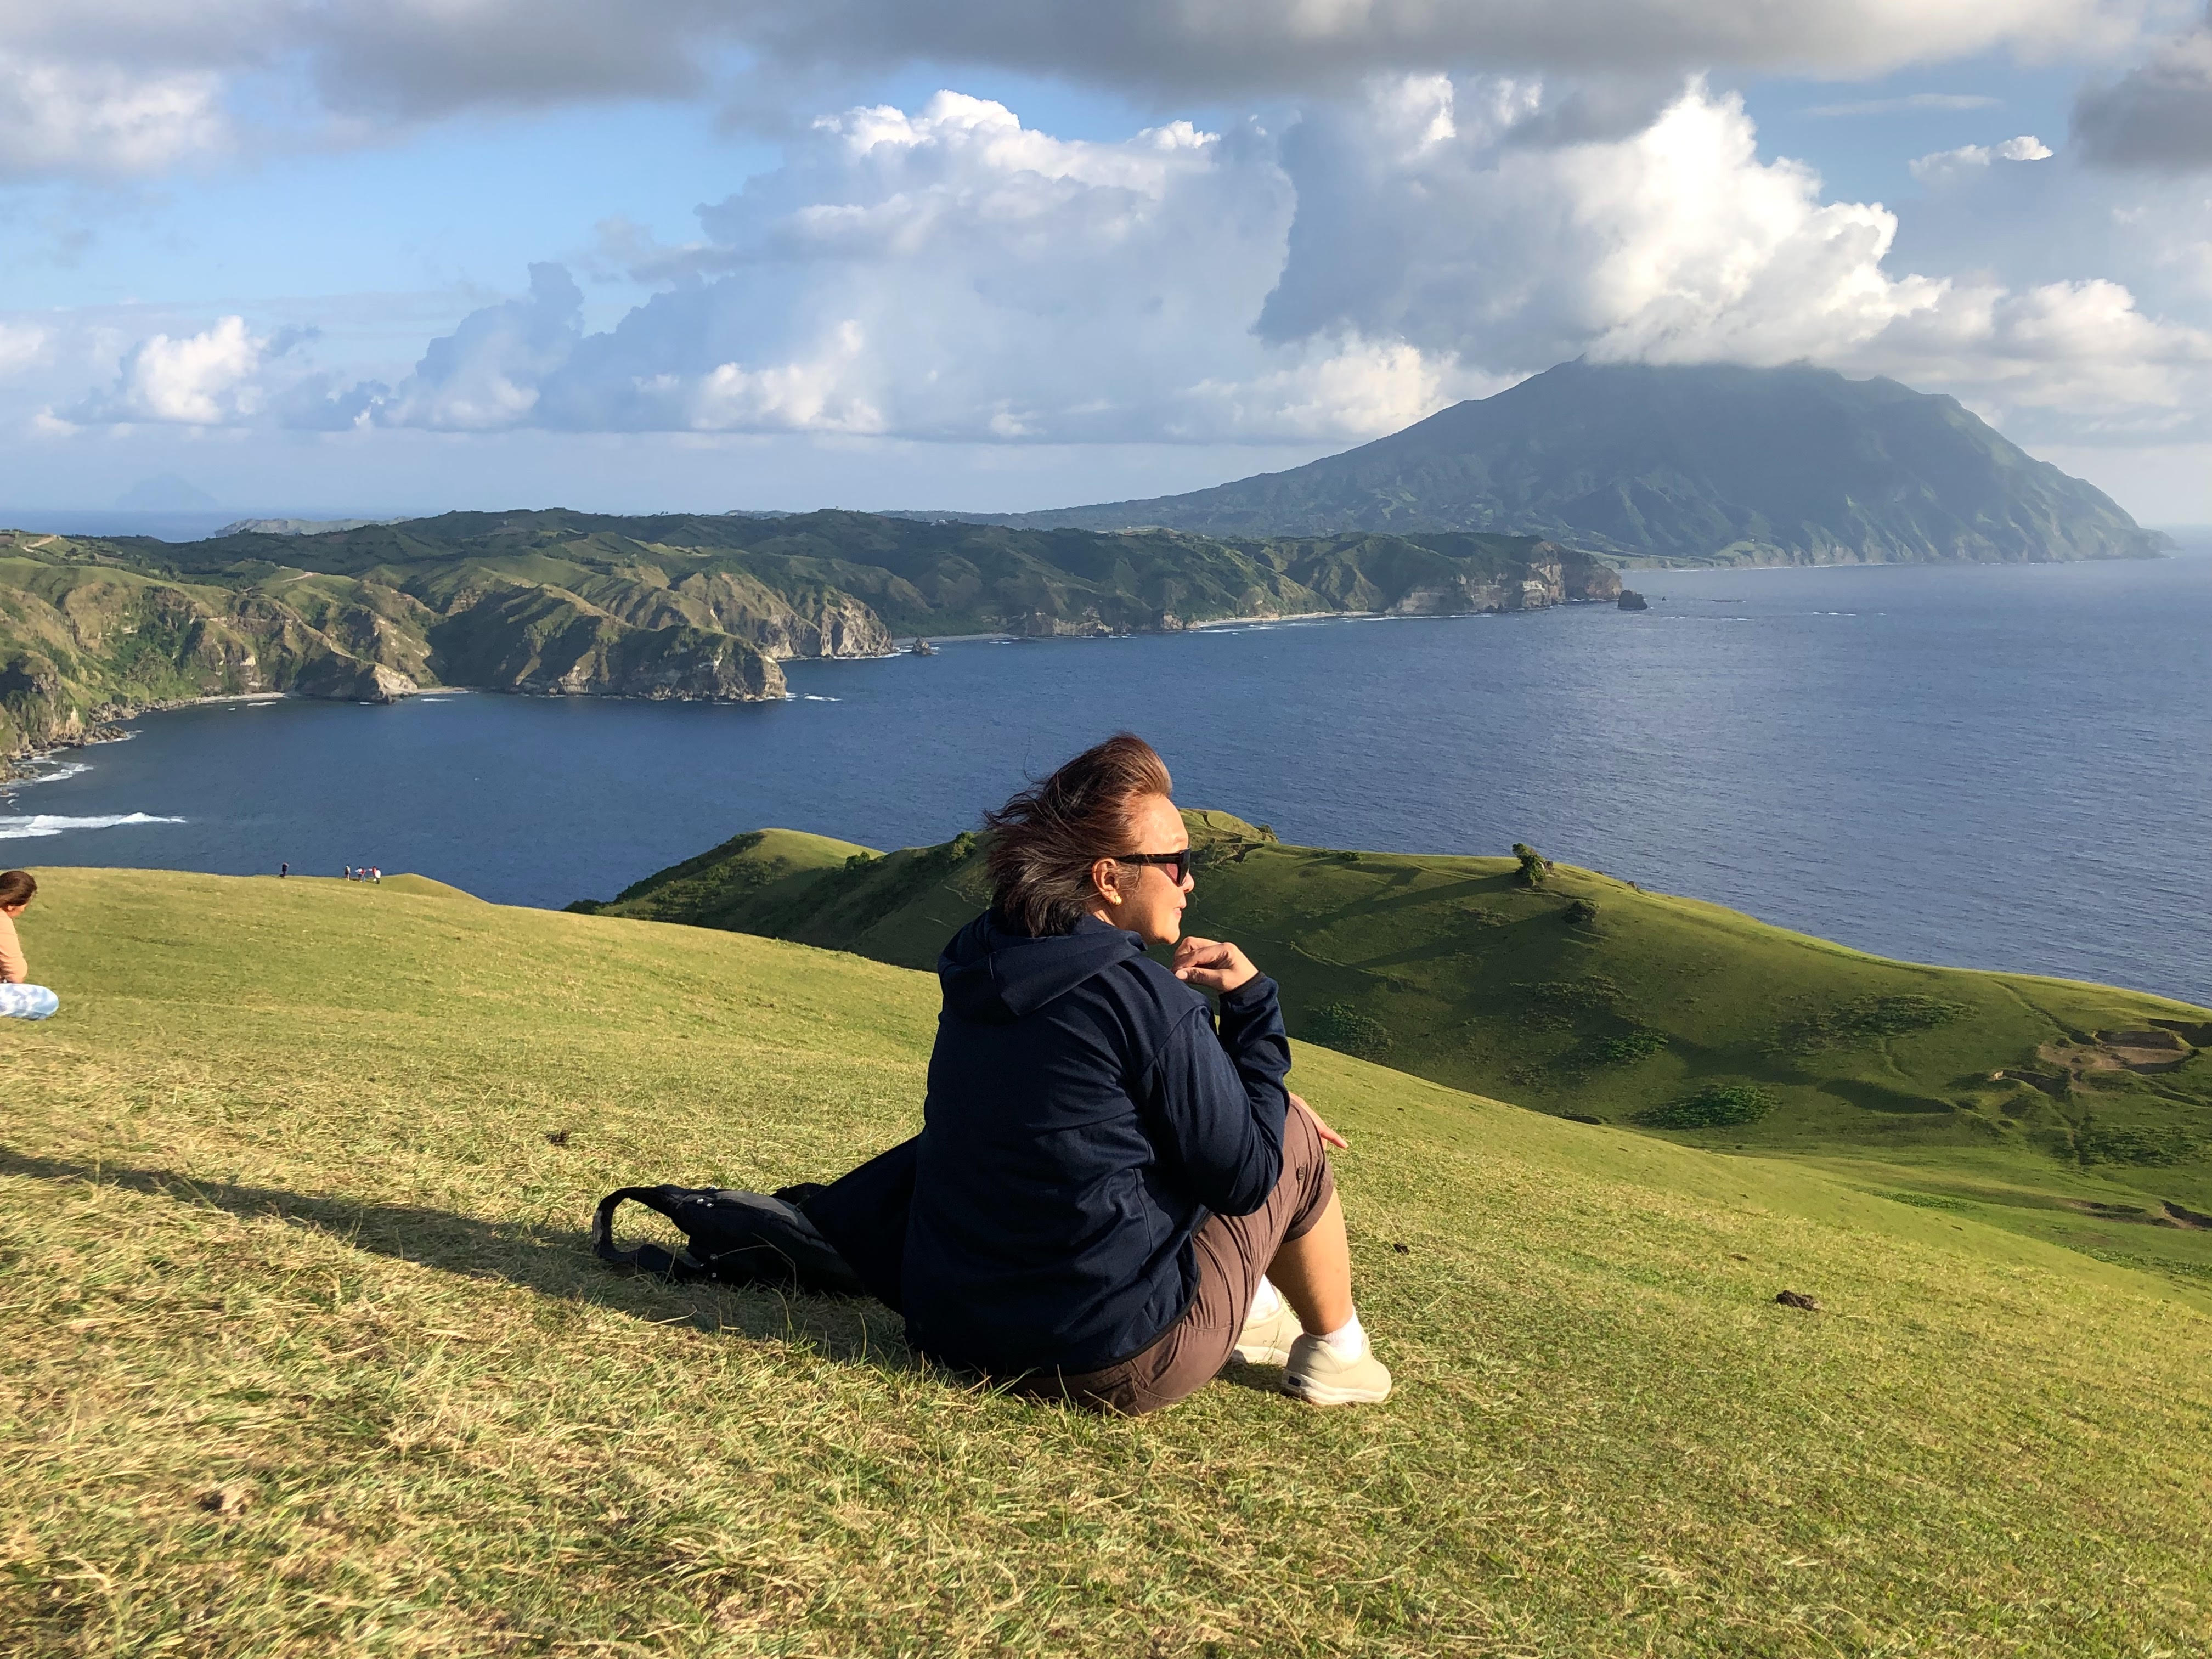 Mila Ong Enjoys the Beauty of Batanes